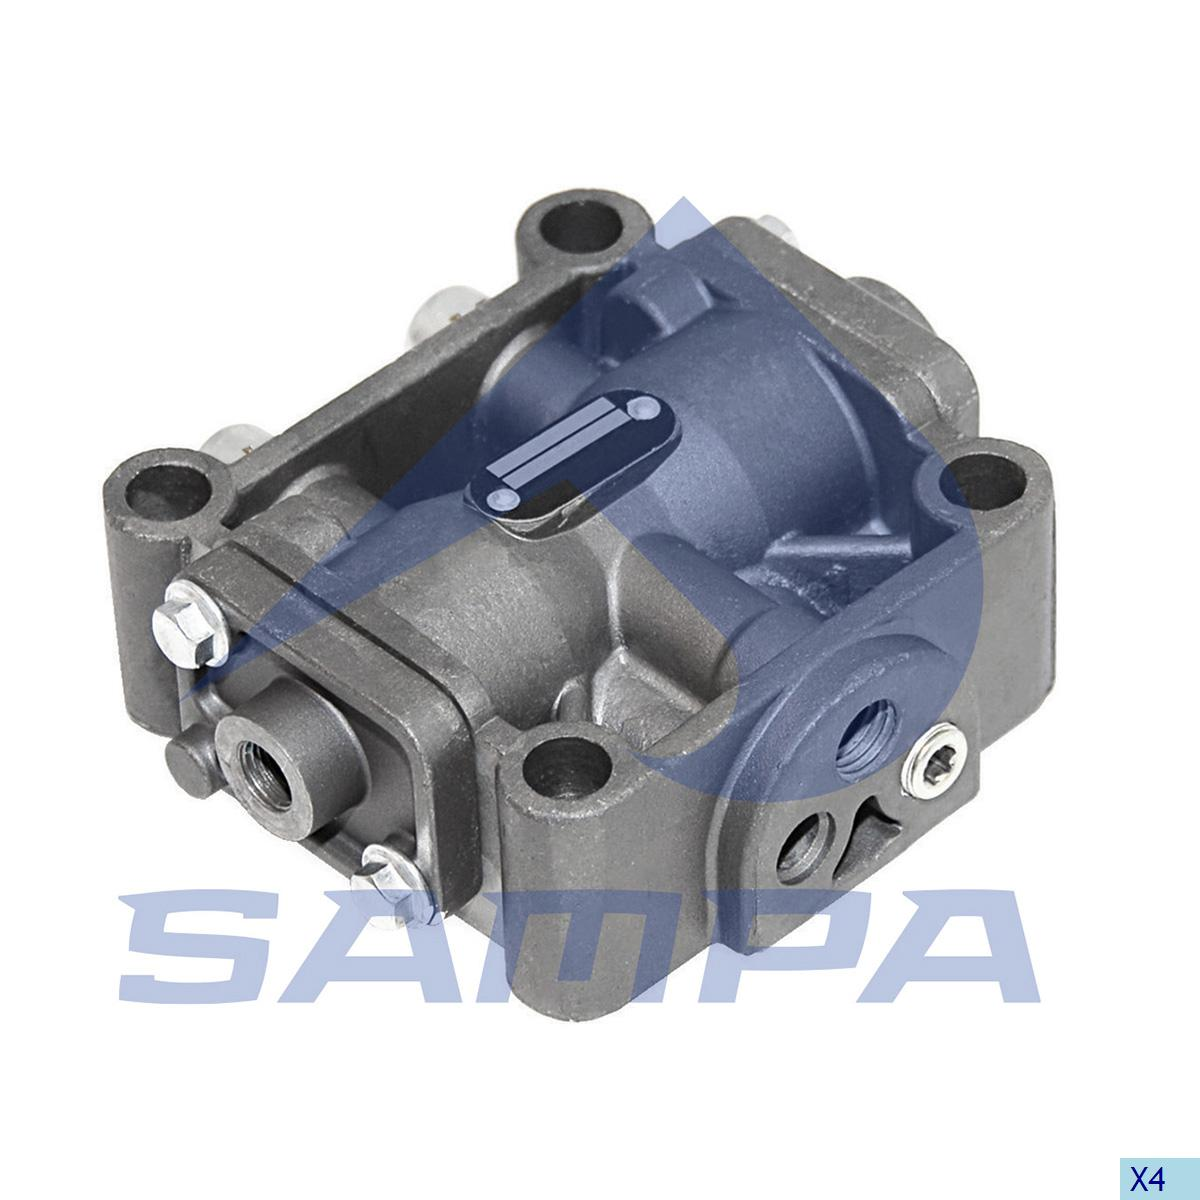 Valve, Gear Shifting, Daf, Gear Box